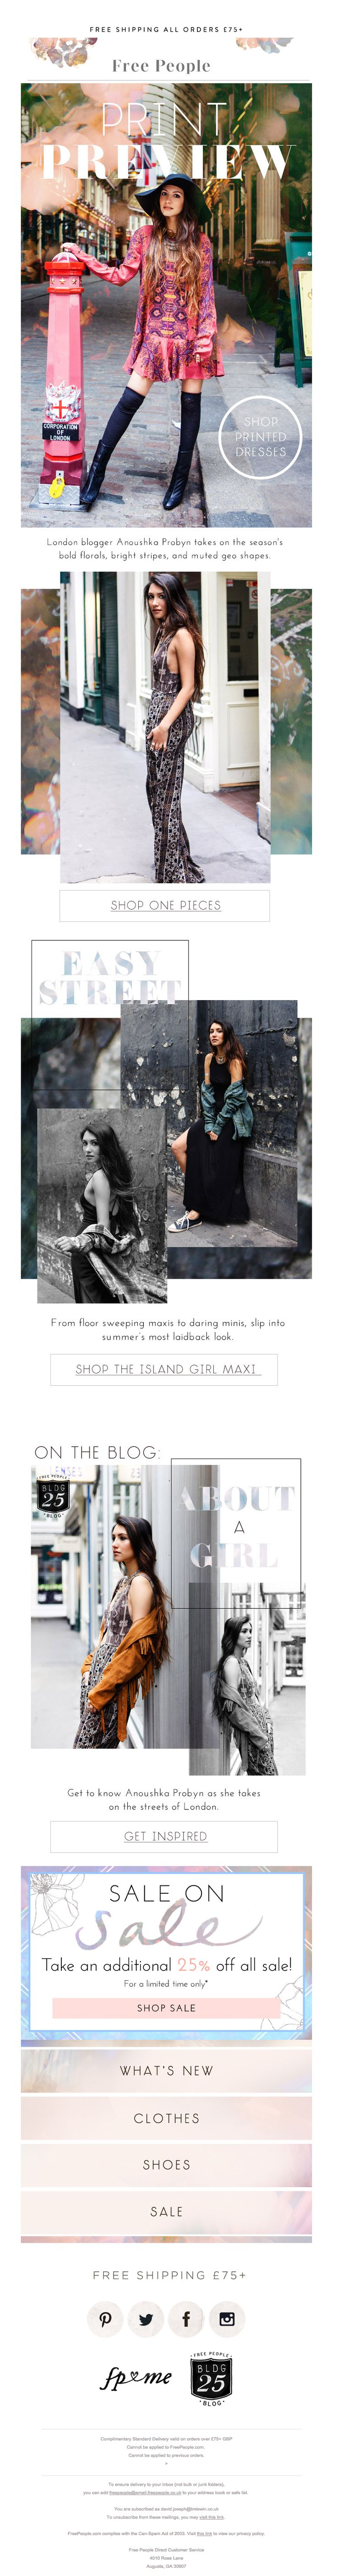 91 best free people images on Pinterest | Email marketing ...